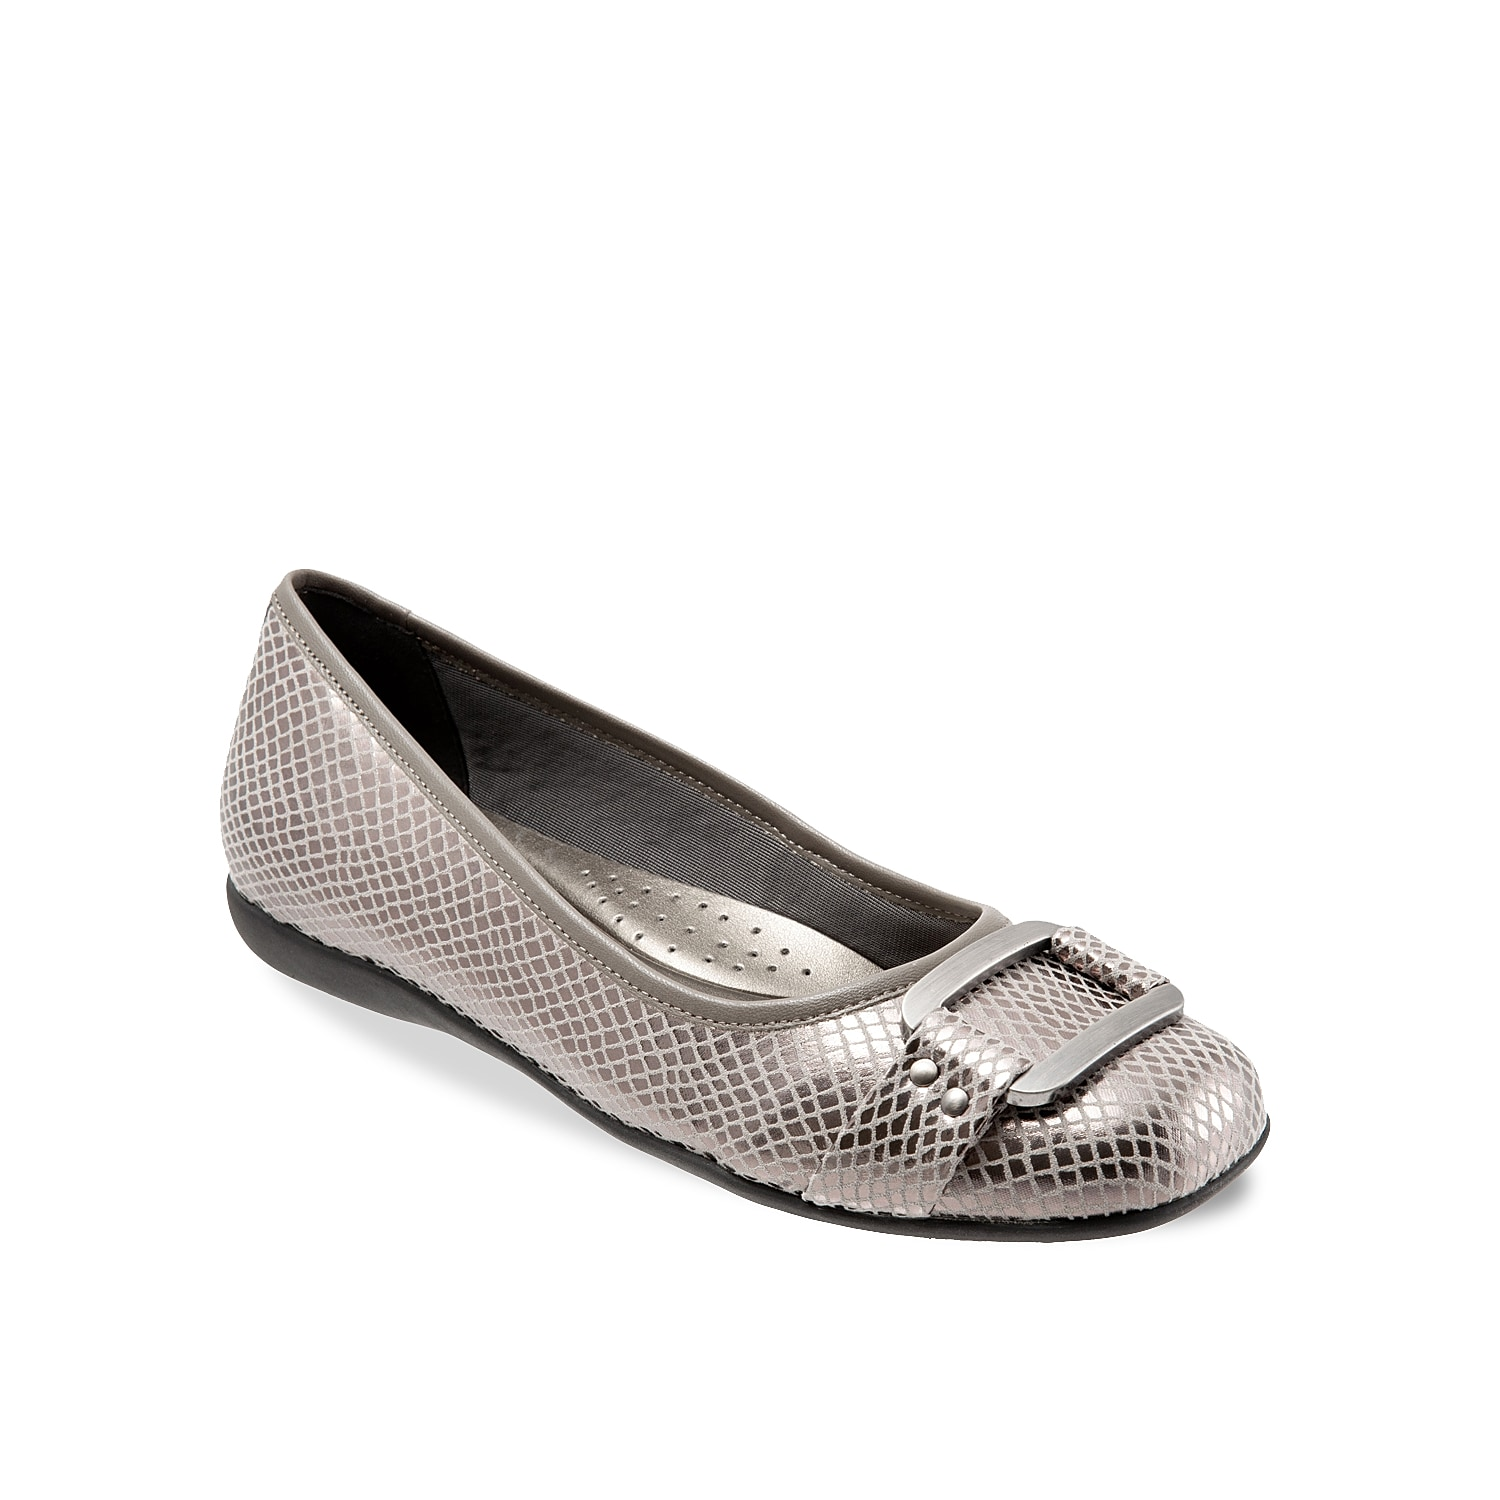 The Sizzle flat from Trotters will add some fierce style to your sophisticated look. Featuring an oversized metal ornament, this embossed flat will pair equally well with jeans or slacks.